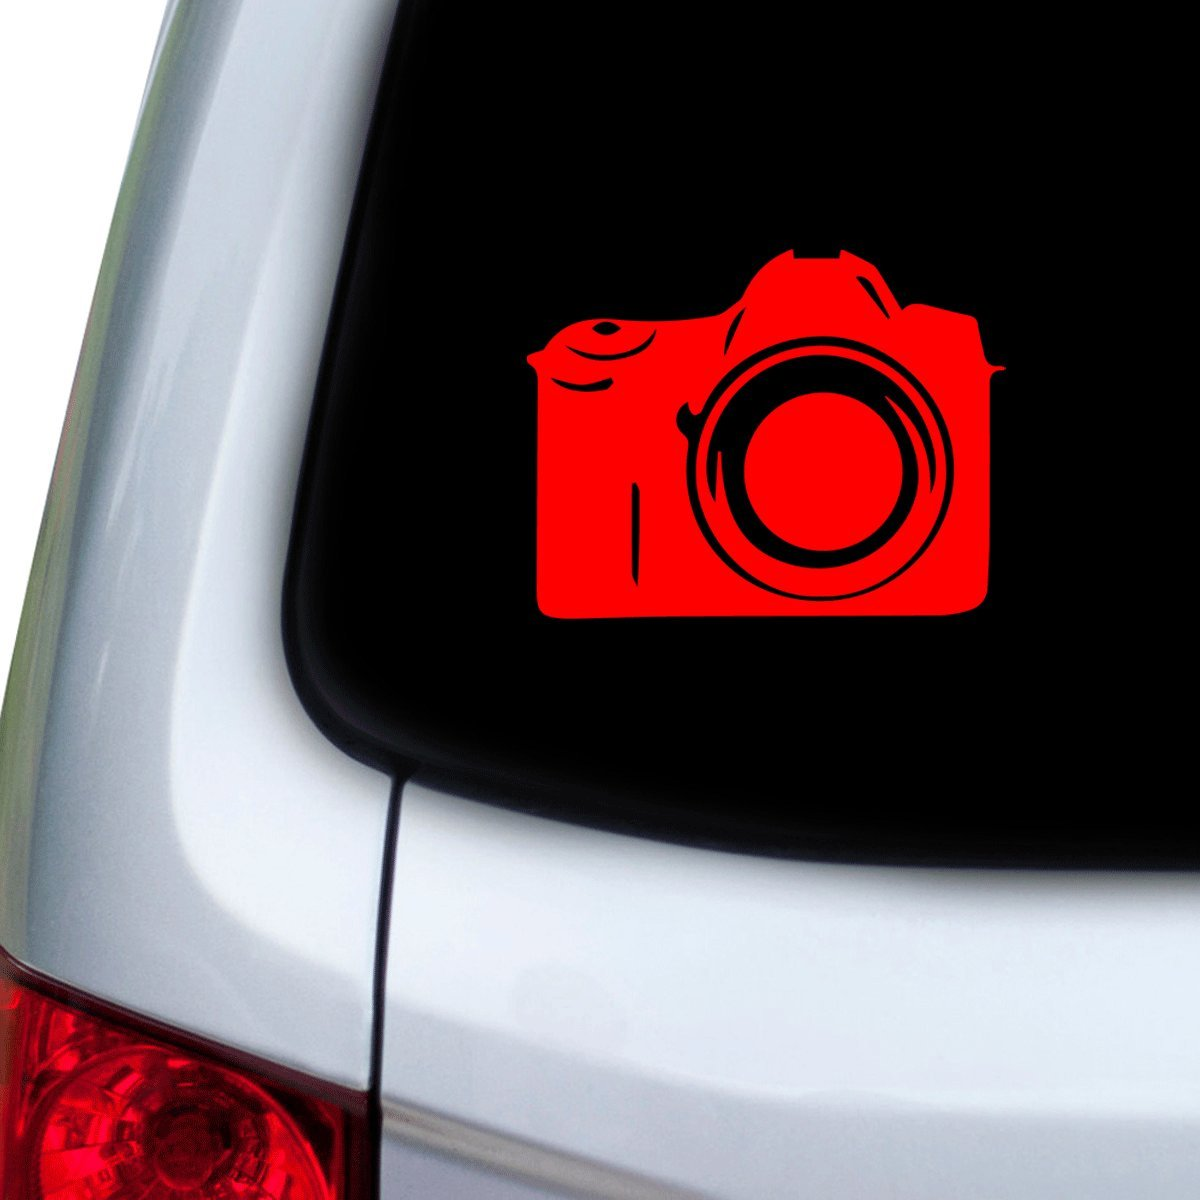 StickAny Car and Auto Decal Series DSLR Sticker for Windows Hoods Red Doors